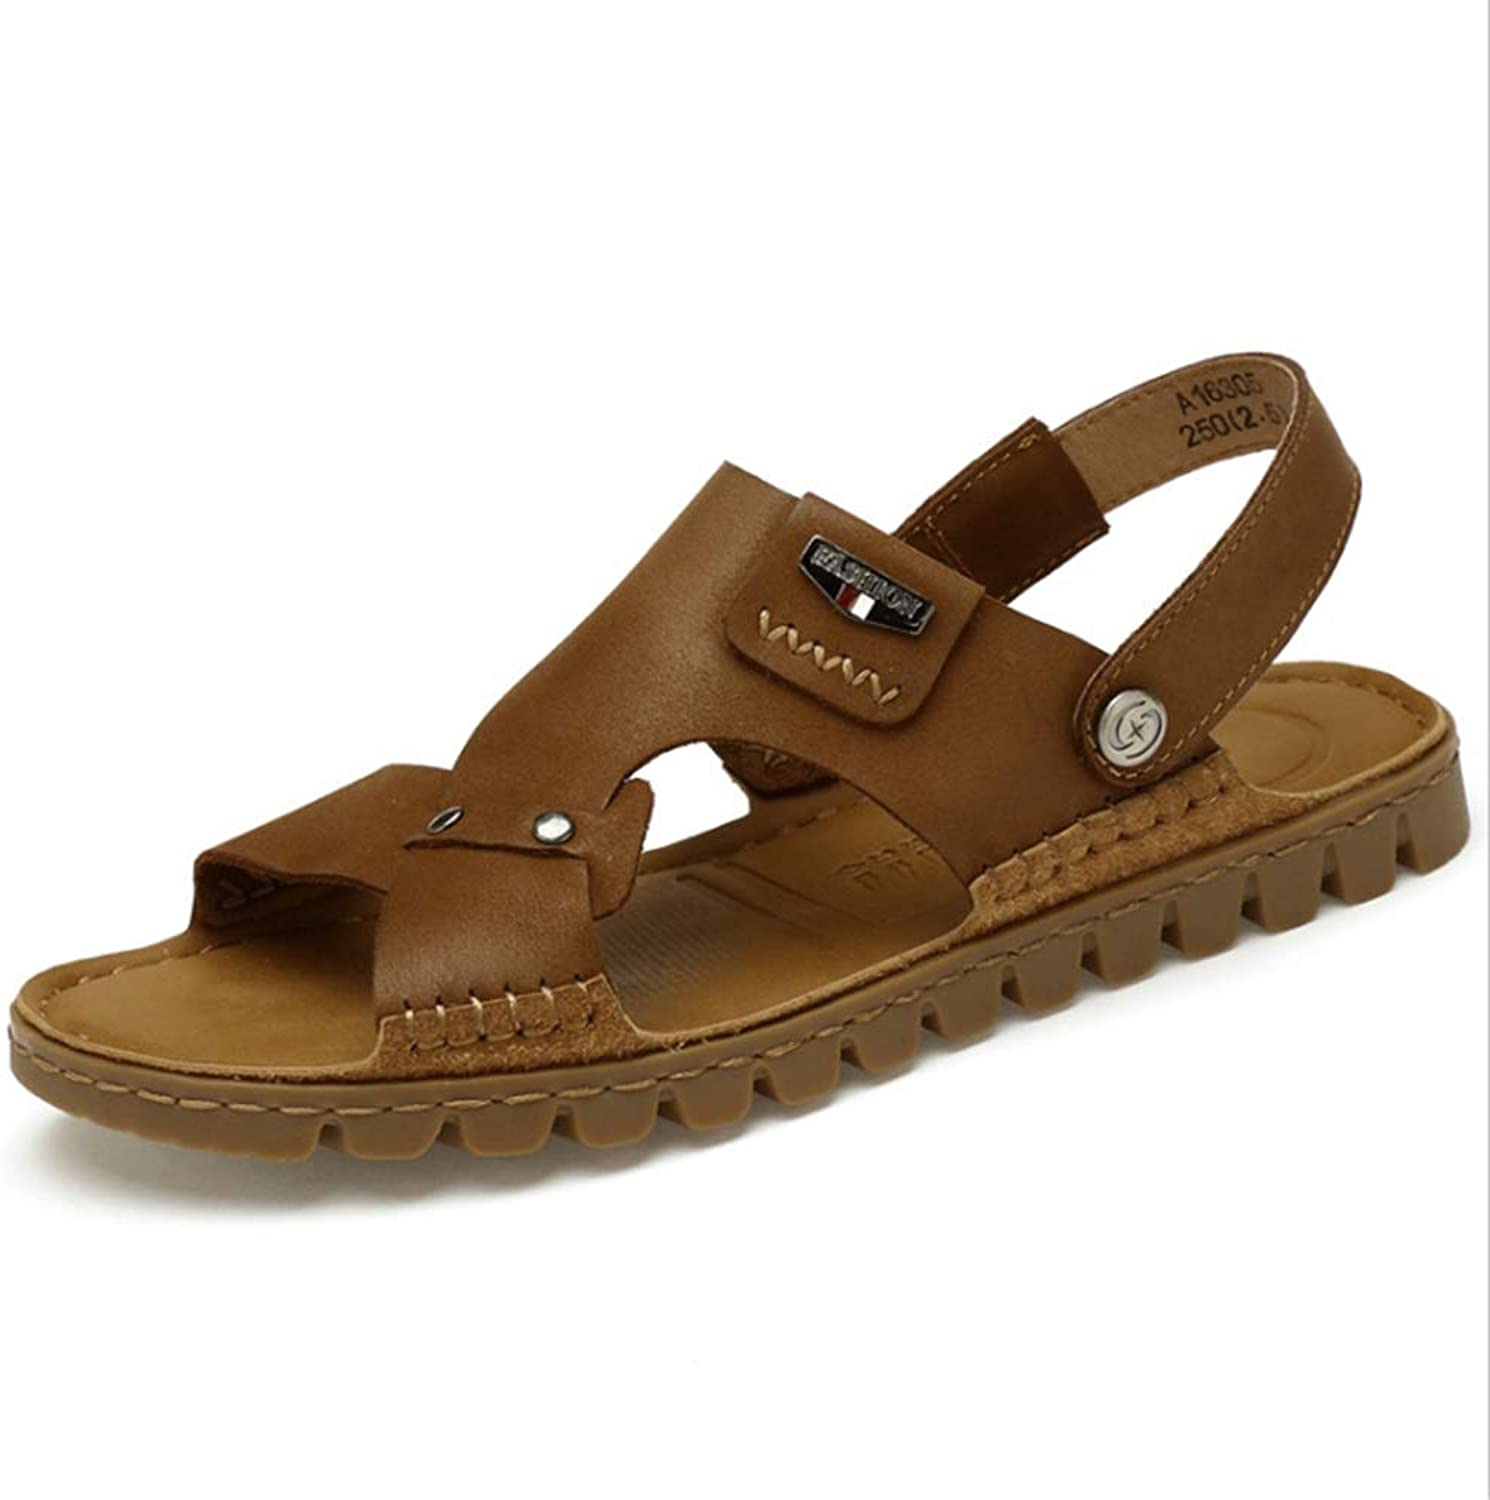 Sandal Men's Sports Leather Sandals with Anti-Skid Sandals Anti-Skid Breathable